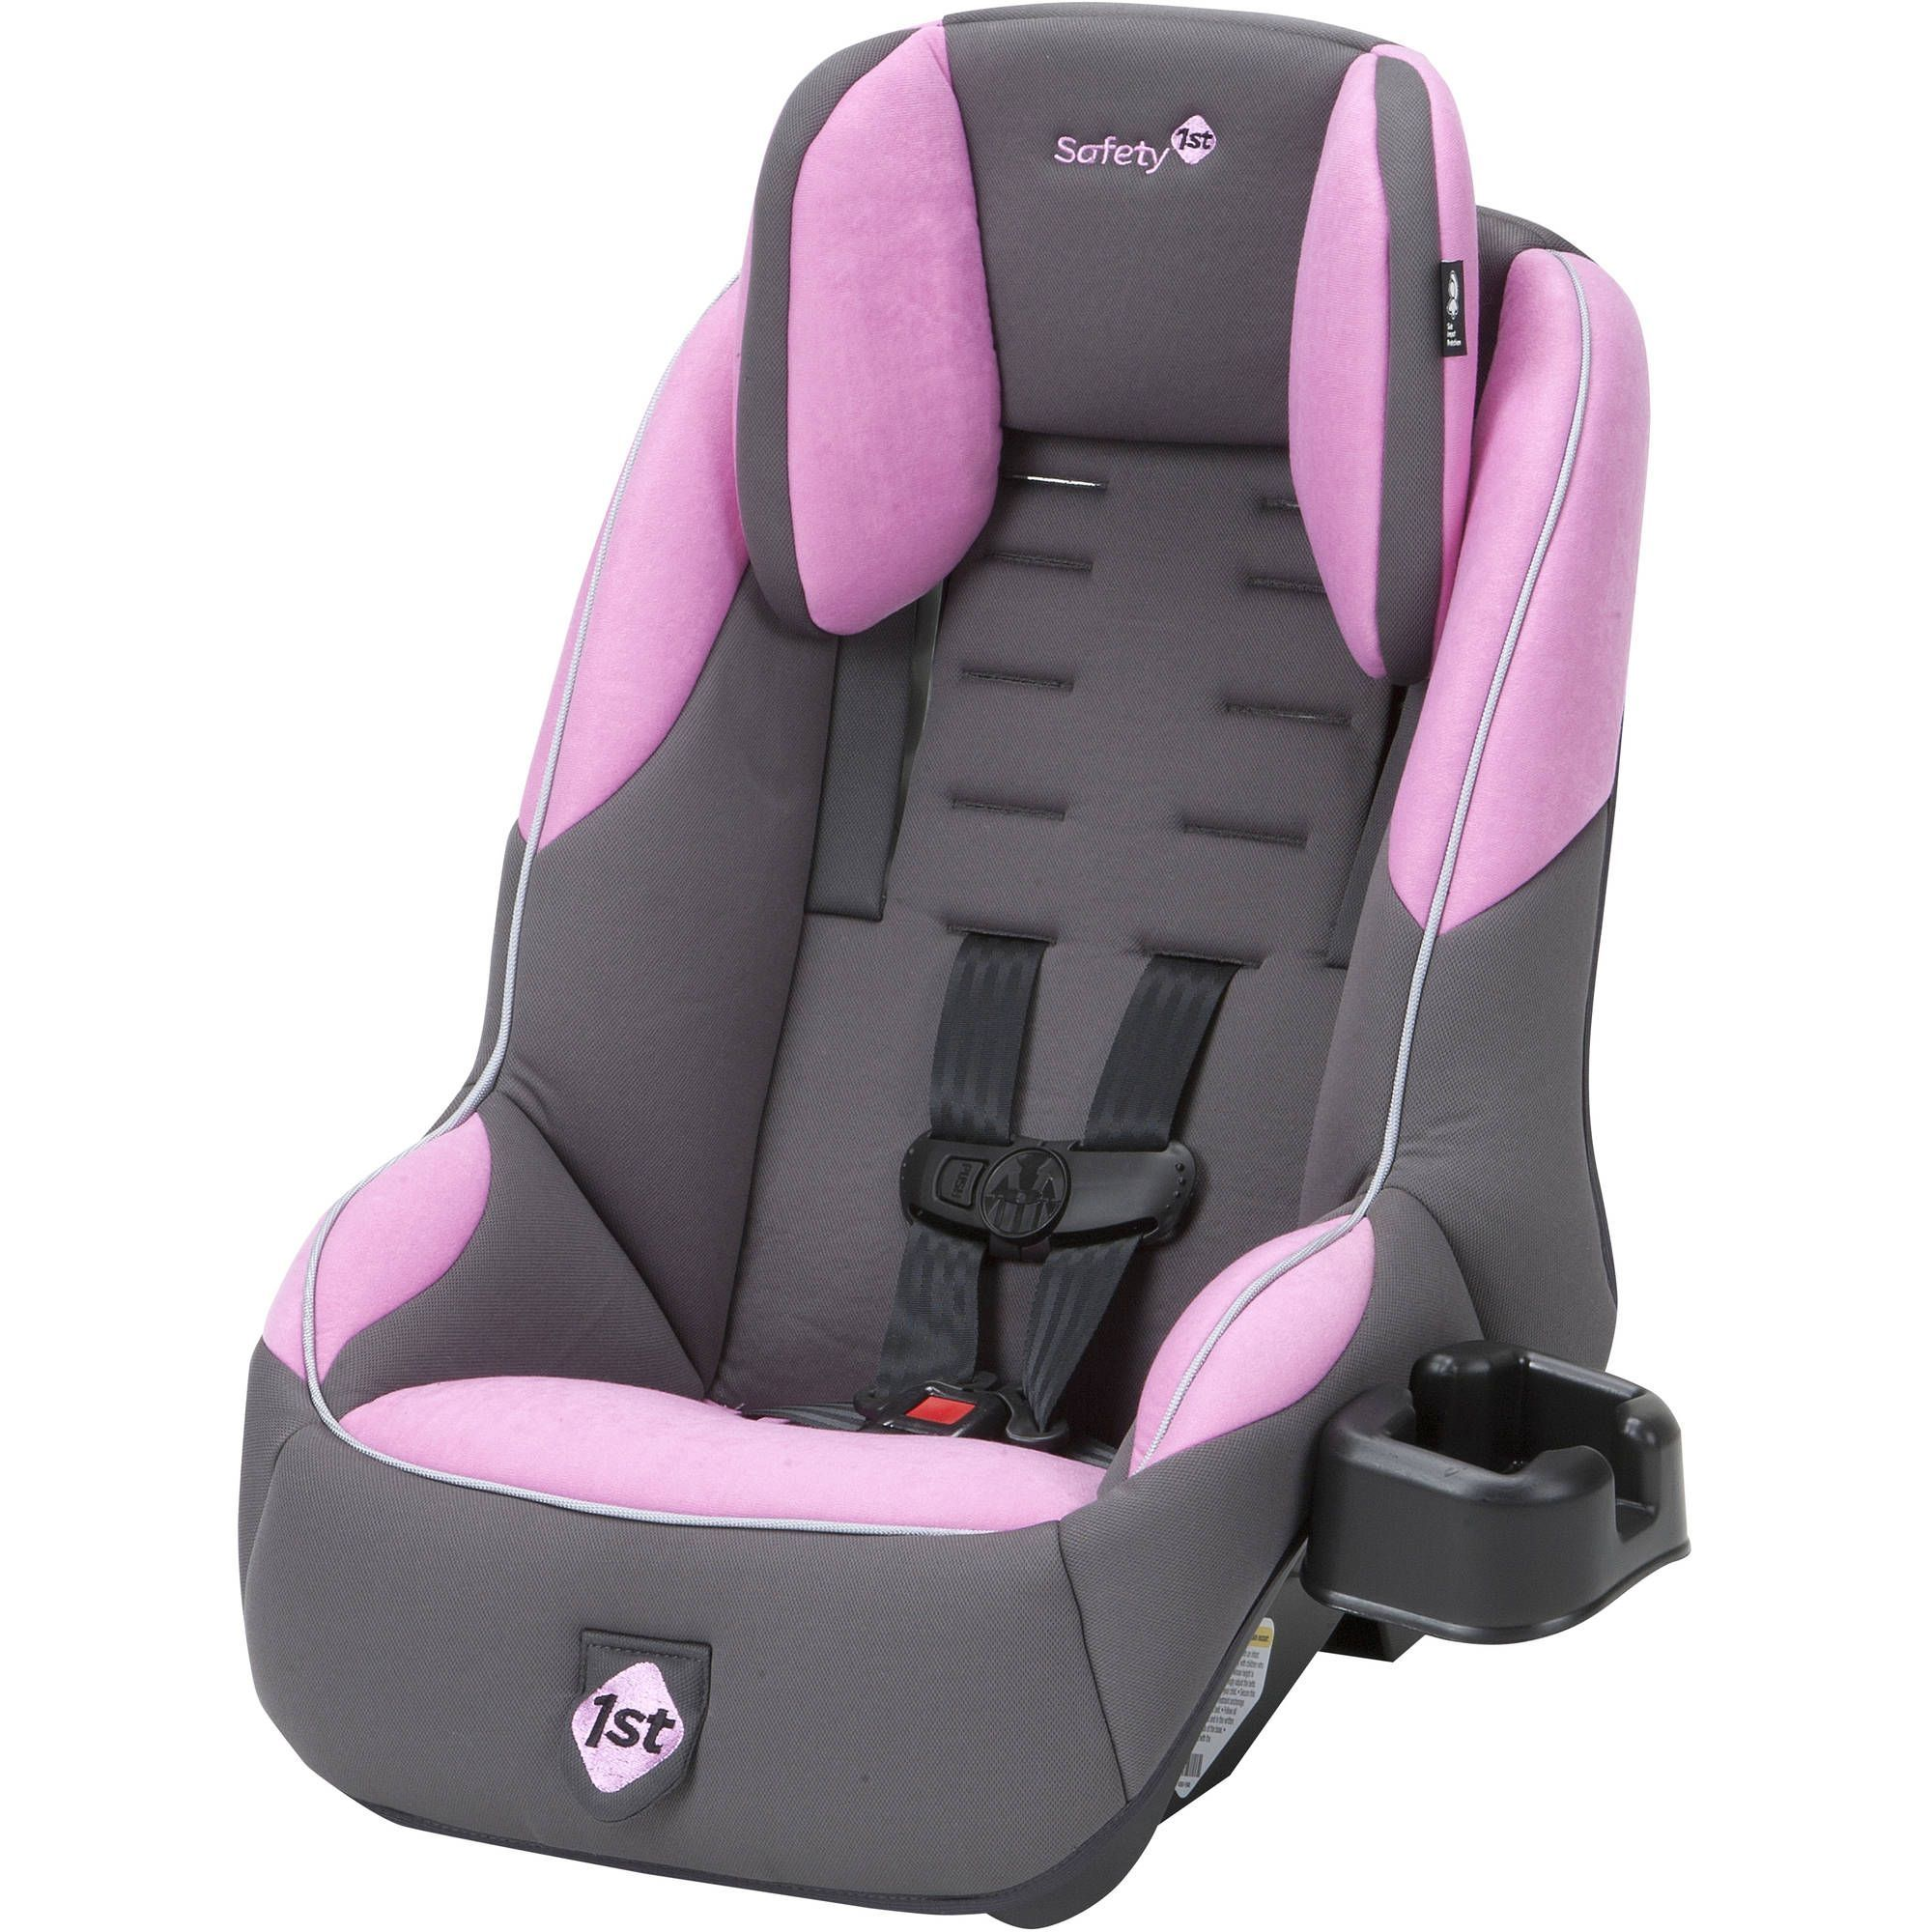 Safety 1St Guide 65 Sport Convertible Car Seat, Choose